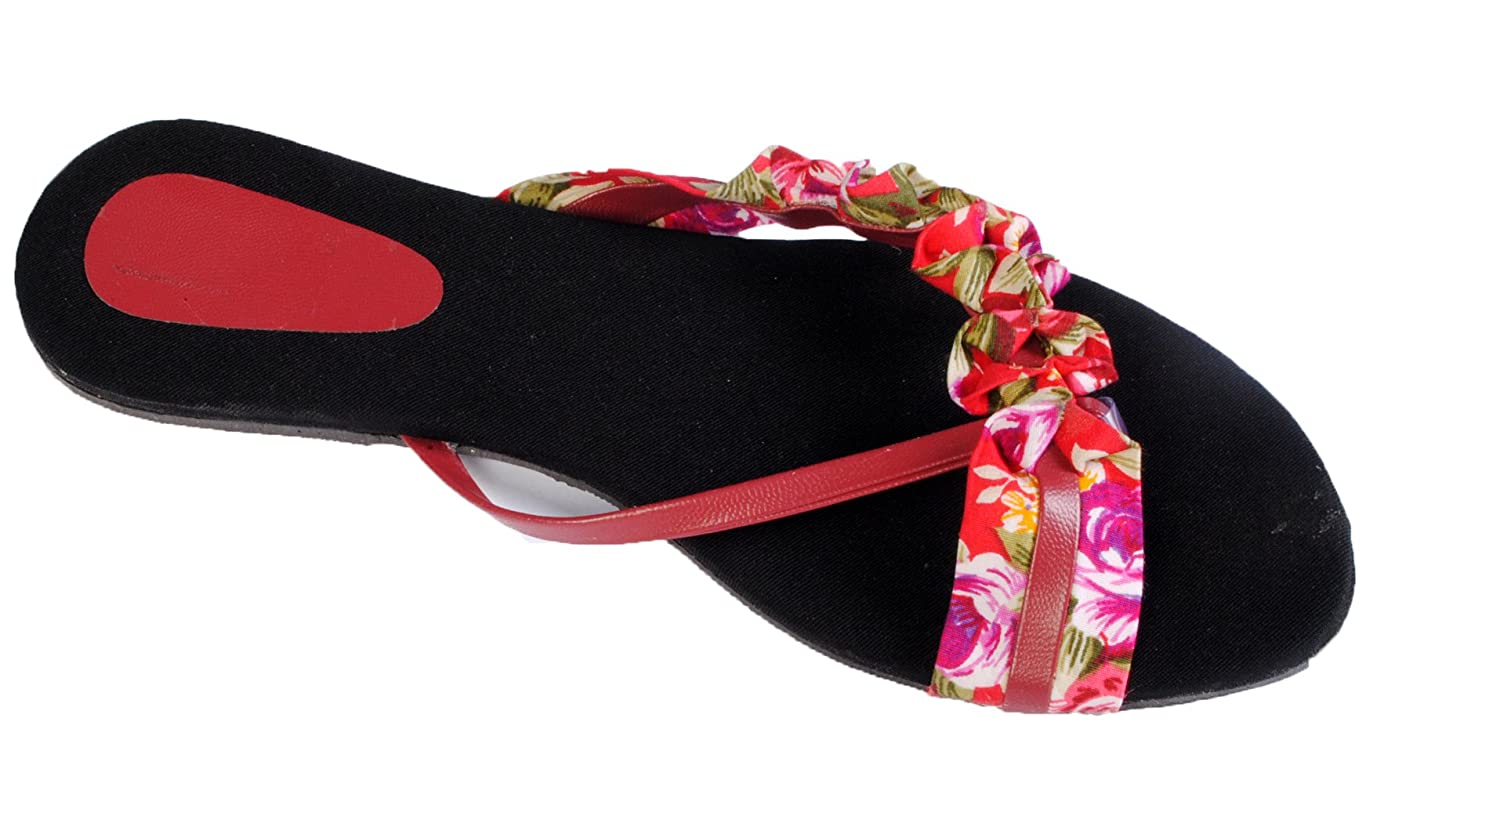 8a0b2e3d745e9f Rnjc Women s Red Fashion Sandal - 6  Buy Online at Low Prices in India -  Amazon.in